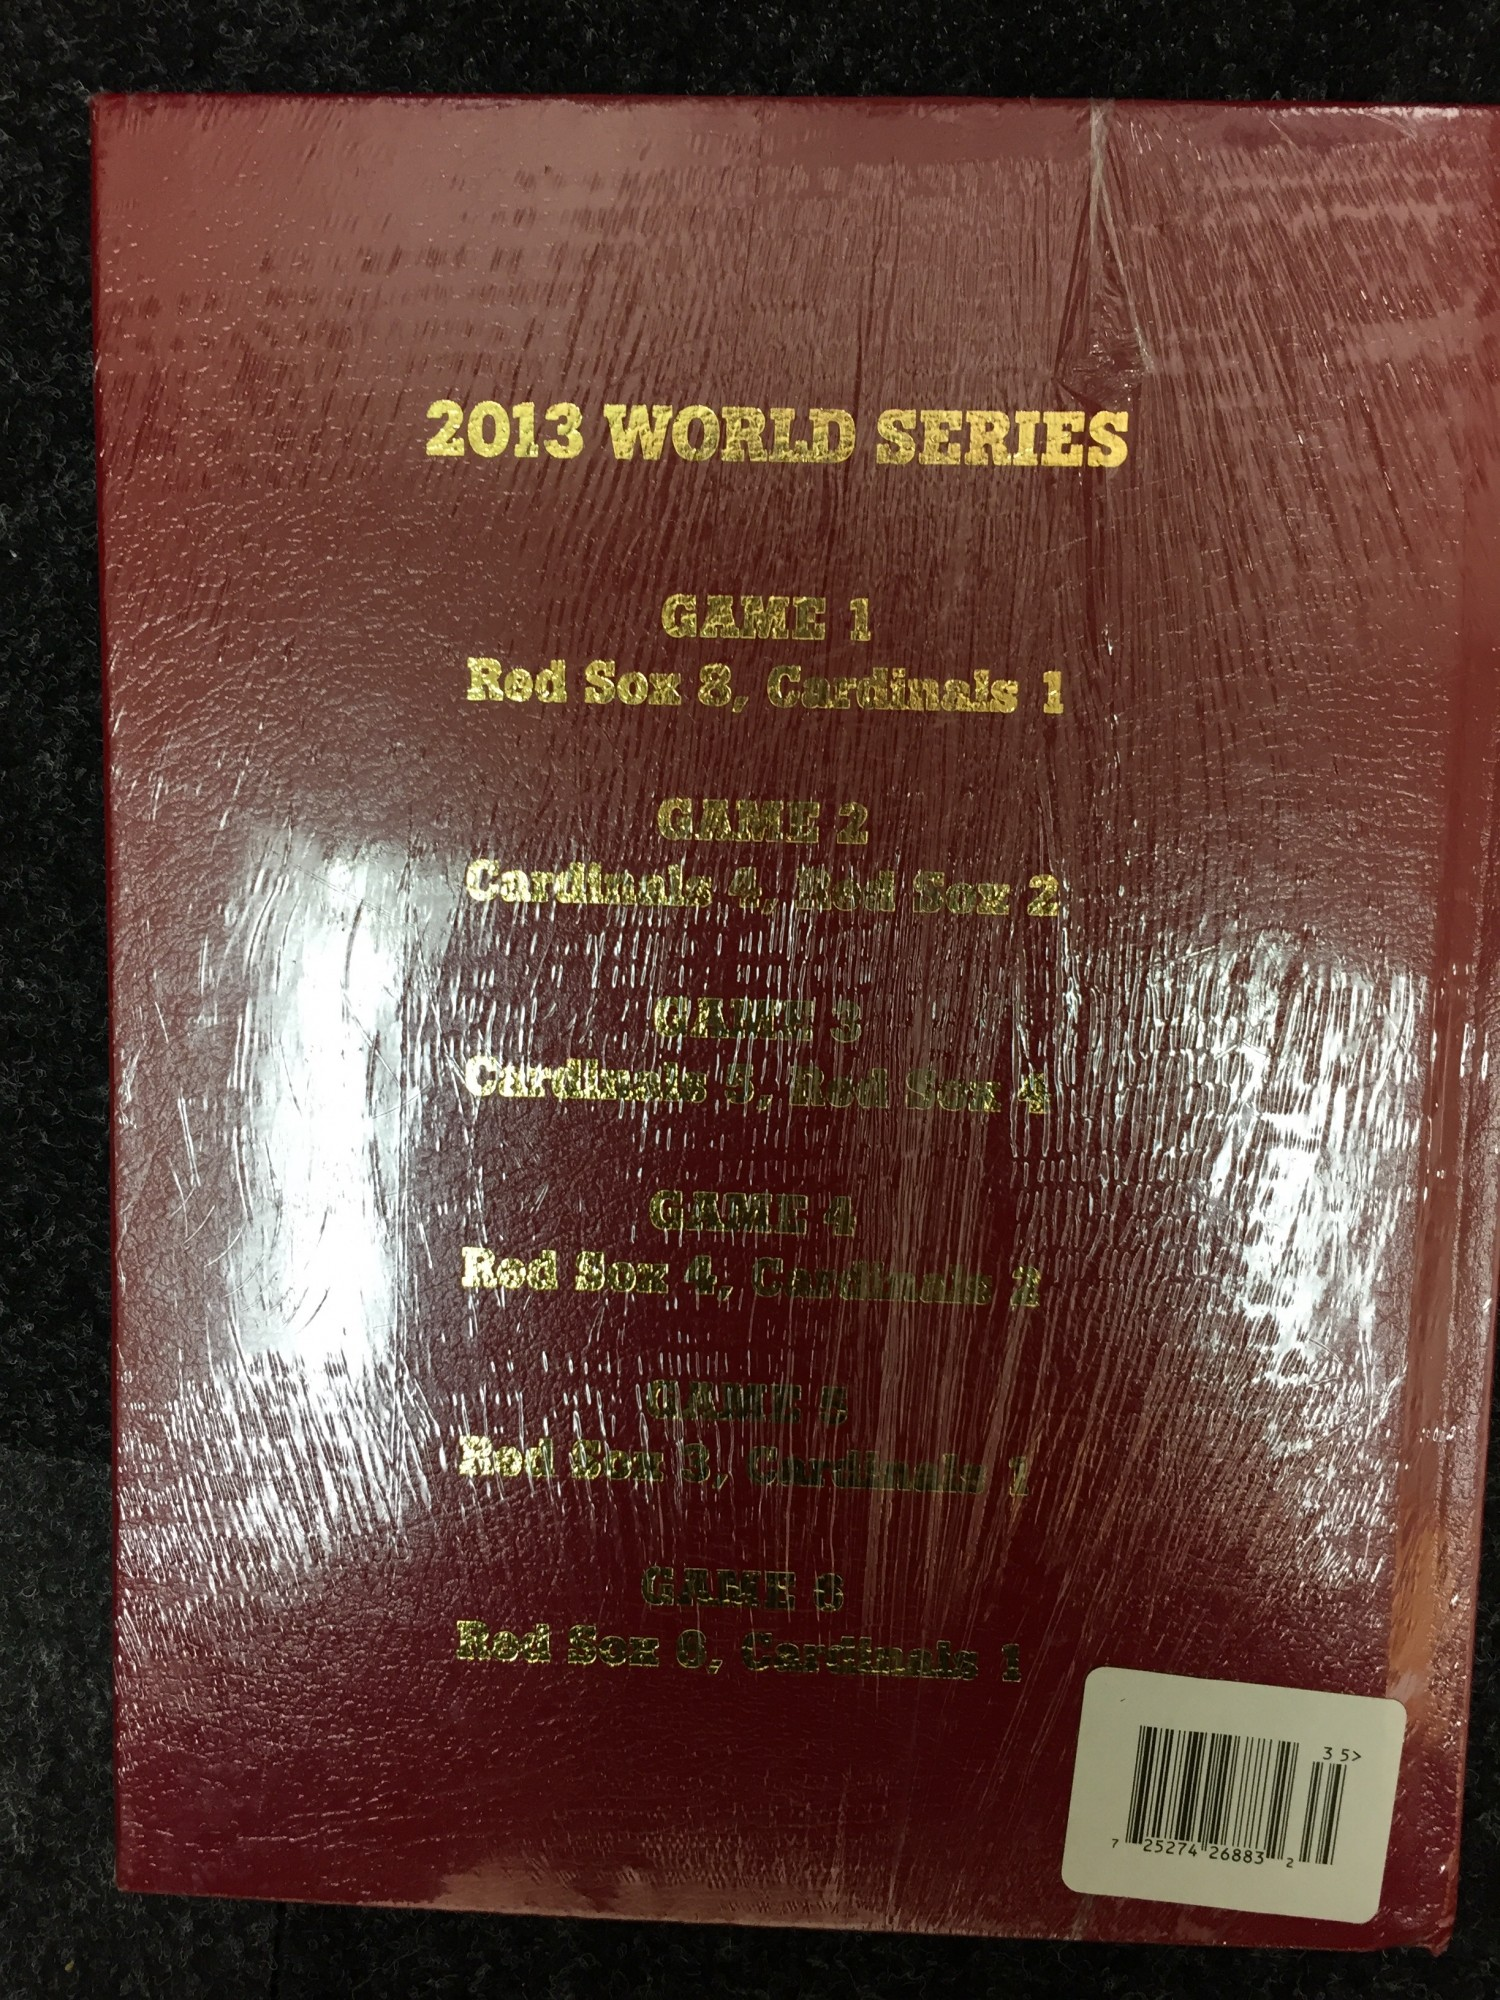 BOSTON RED SOX 2013 WORLD SERIES HARDCOVER BOOK | Inventory